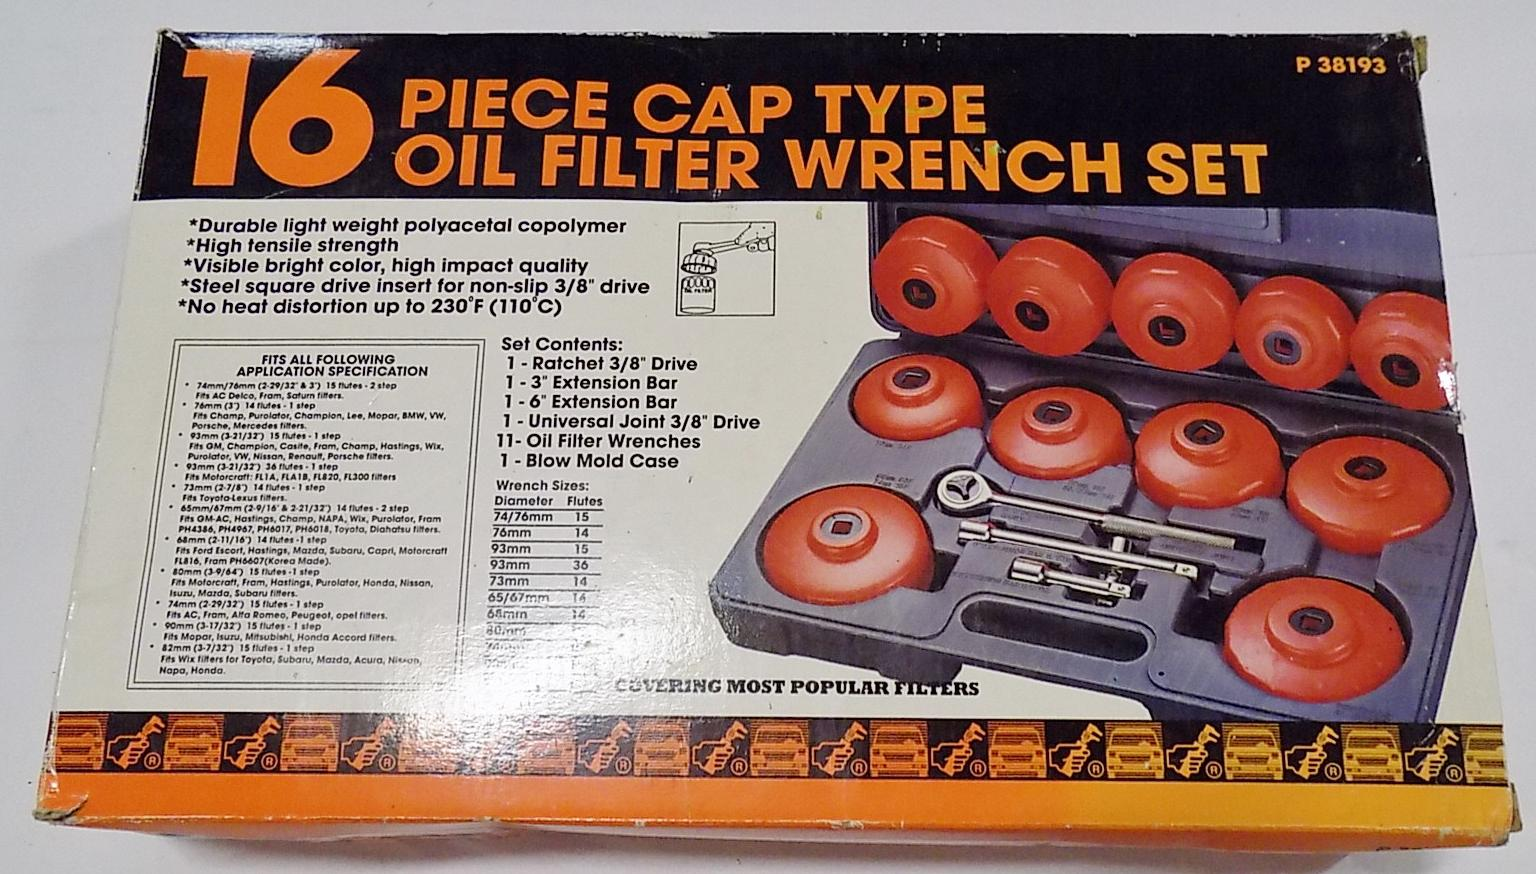 OIL FILTER WRENCH SET | Teel Auctions